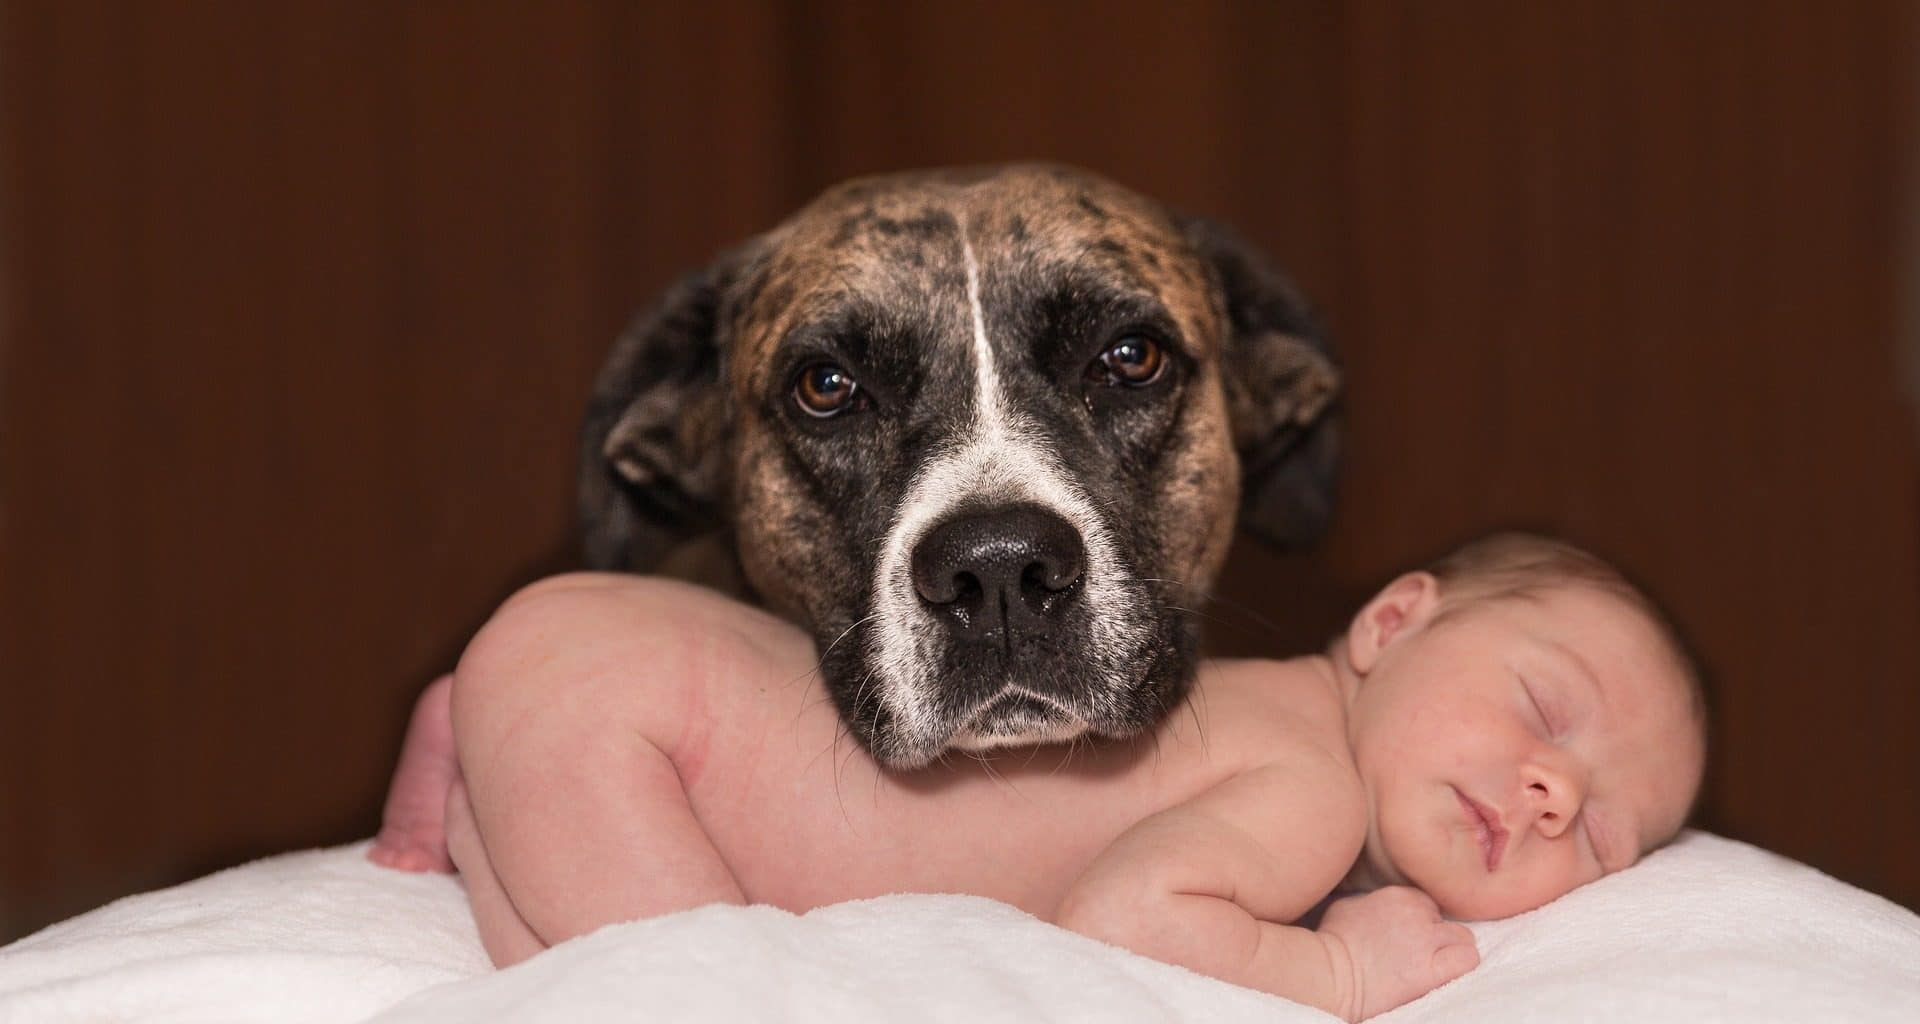 dogs and babies - featured image